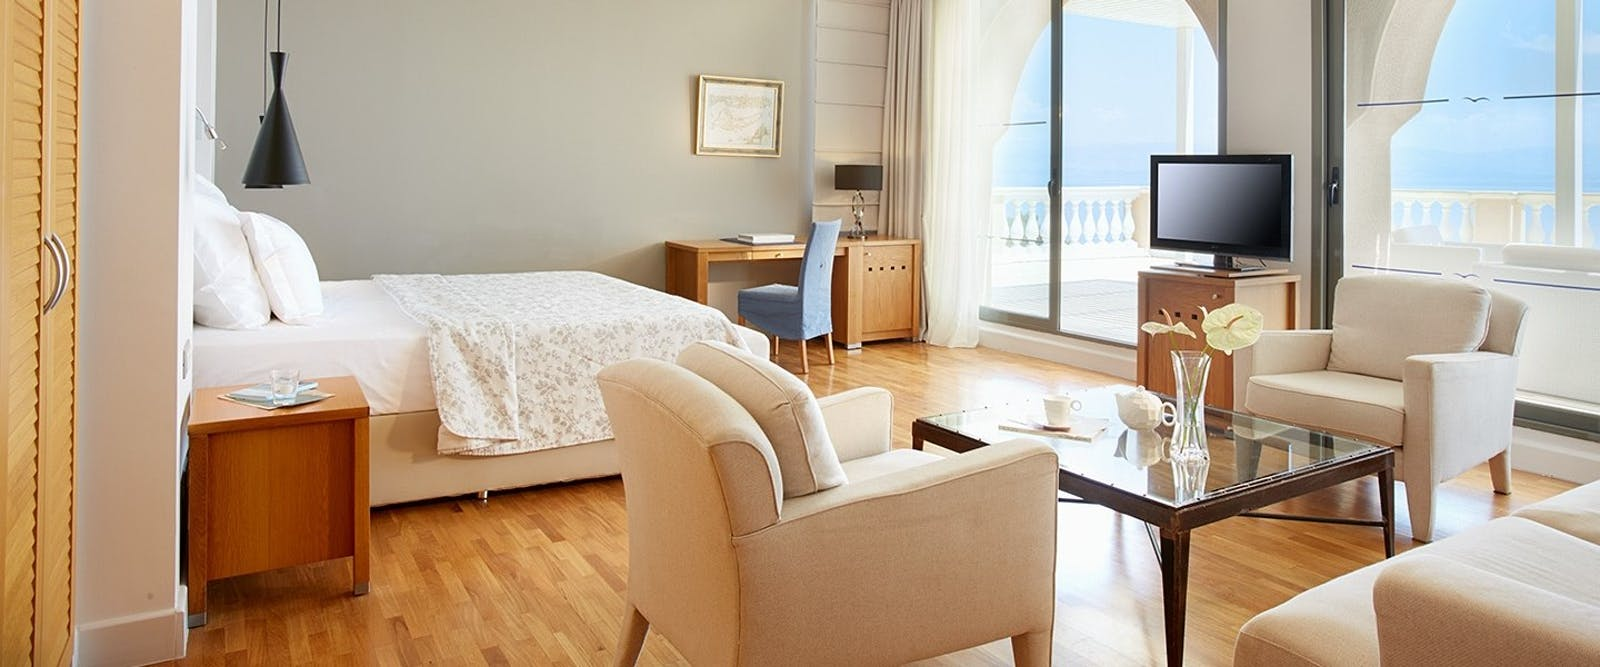 Presidental Suite at Marbella Corfu, Cyprus